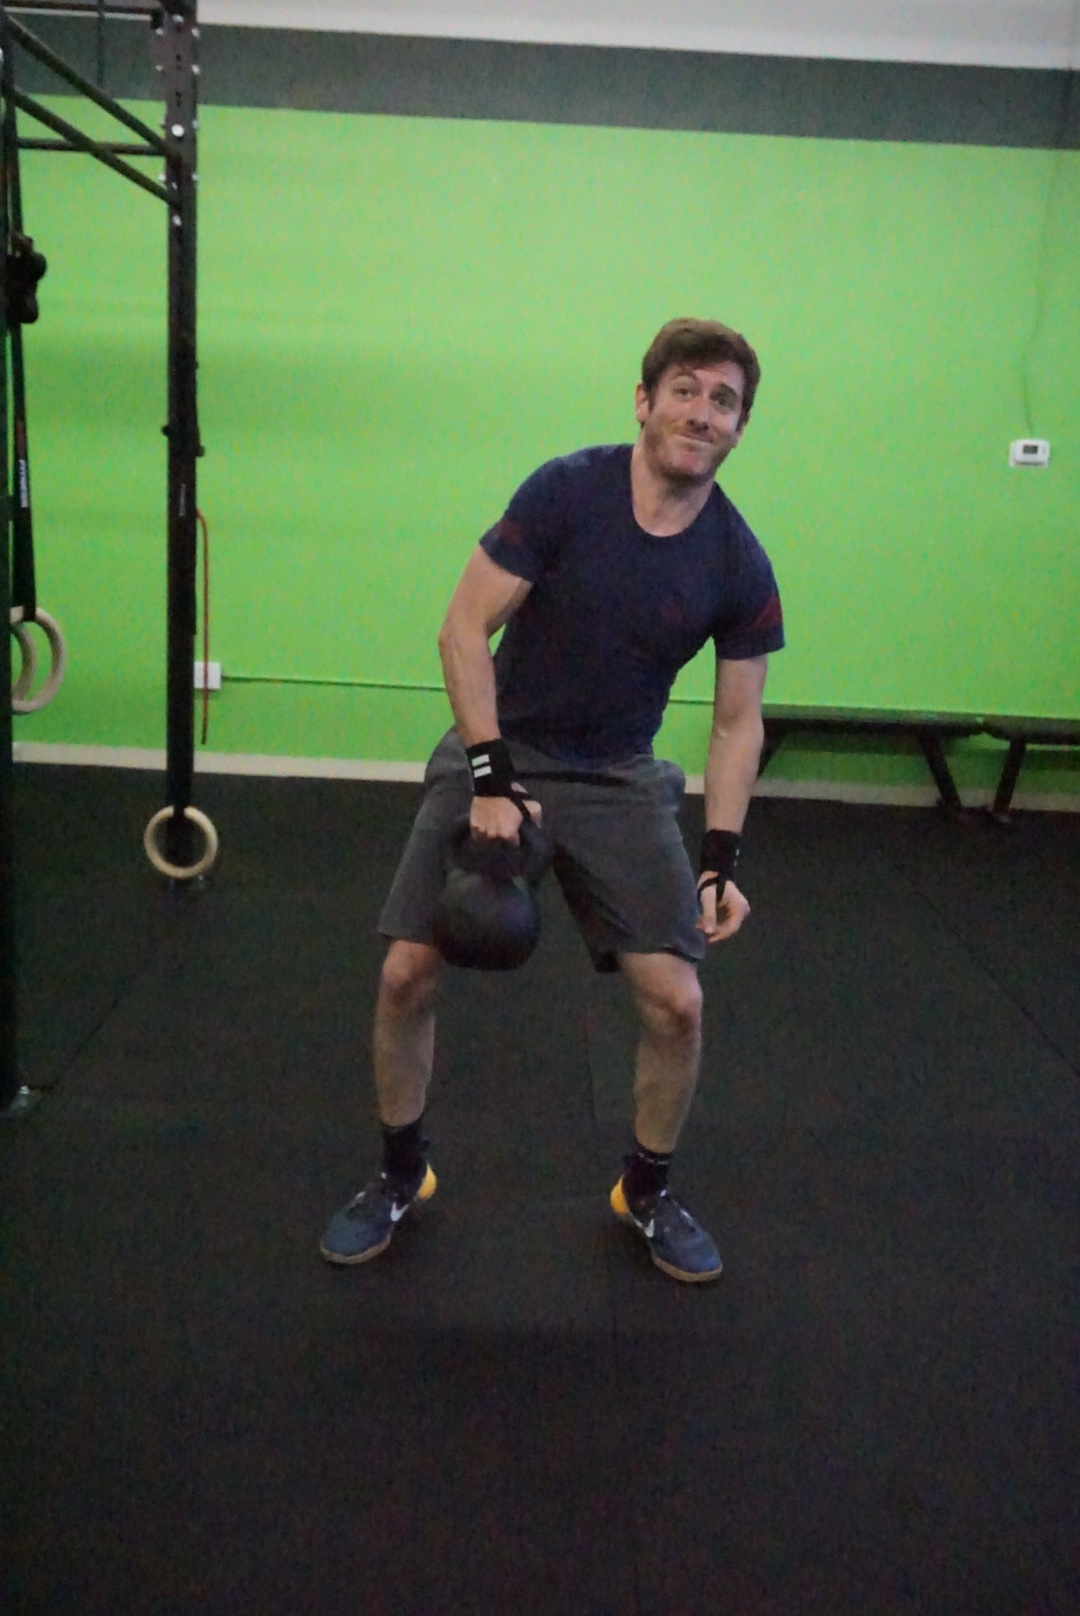 5/5 Stars - Alex is a really great trainer and coach. He has a lot of experience as a trainer and has a really amazing CrossFit box. He's really down to earth but he'll make sure you are giving your maximum effort. Alacrity is a really fun and energetic place to train.    -from CrossFit Alacrity Google Reviews